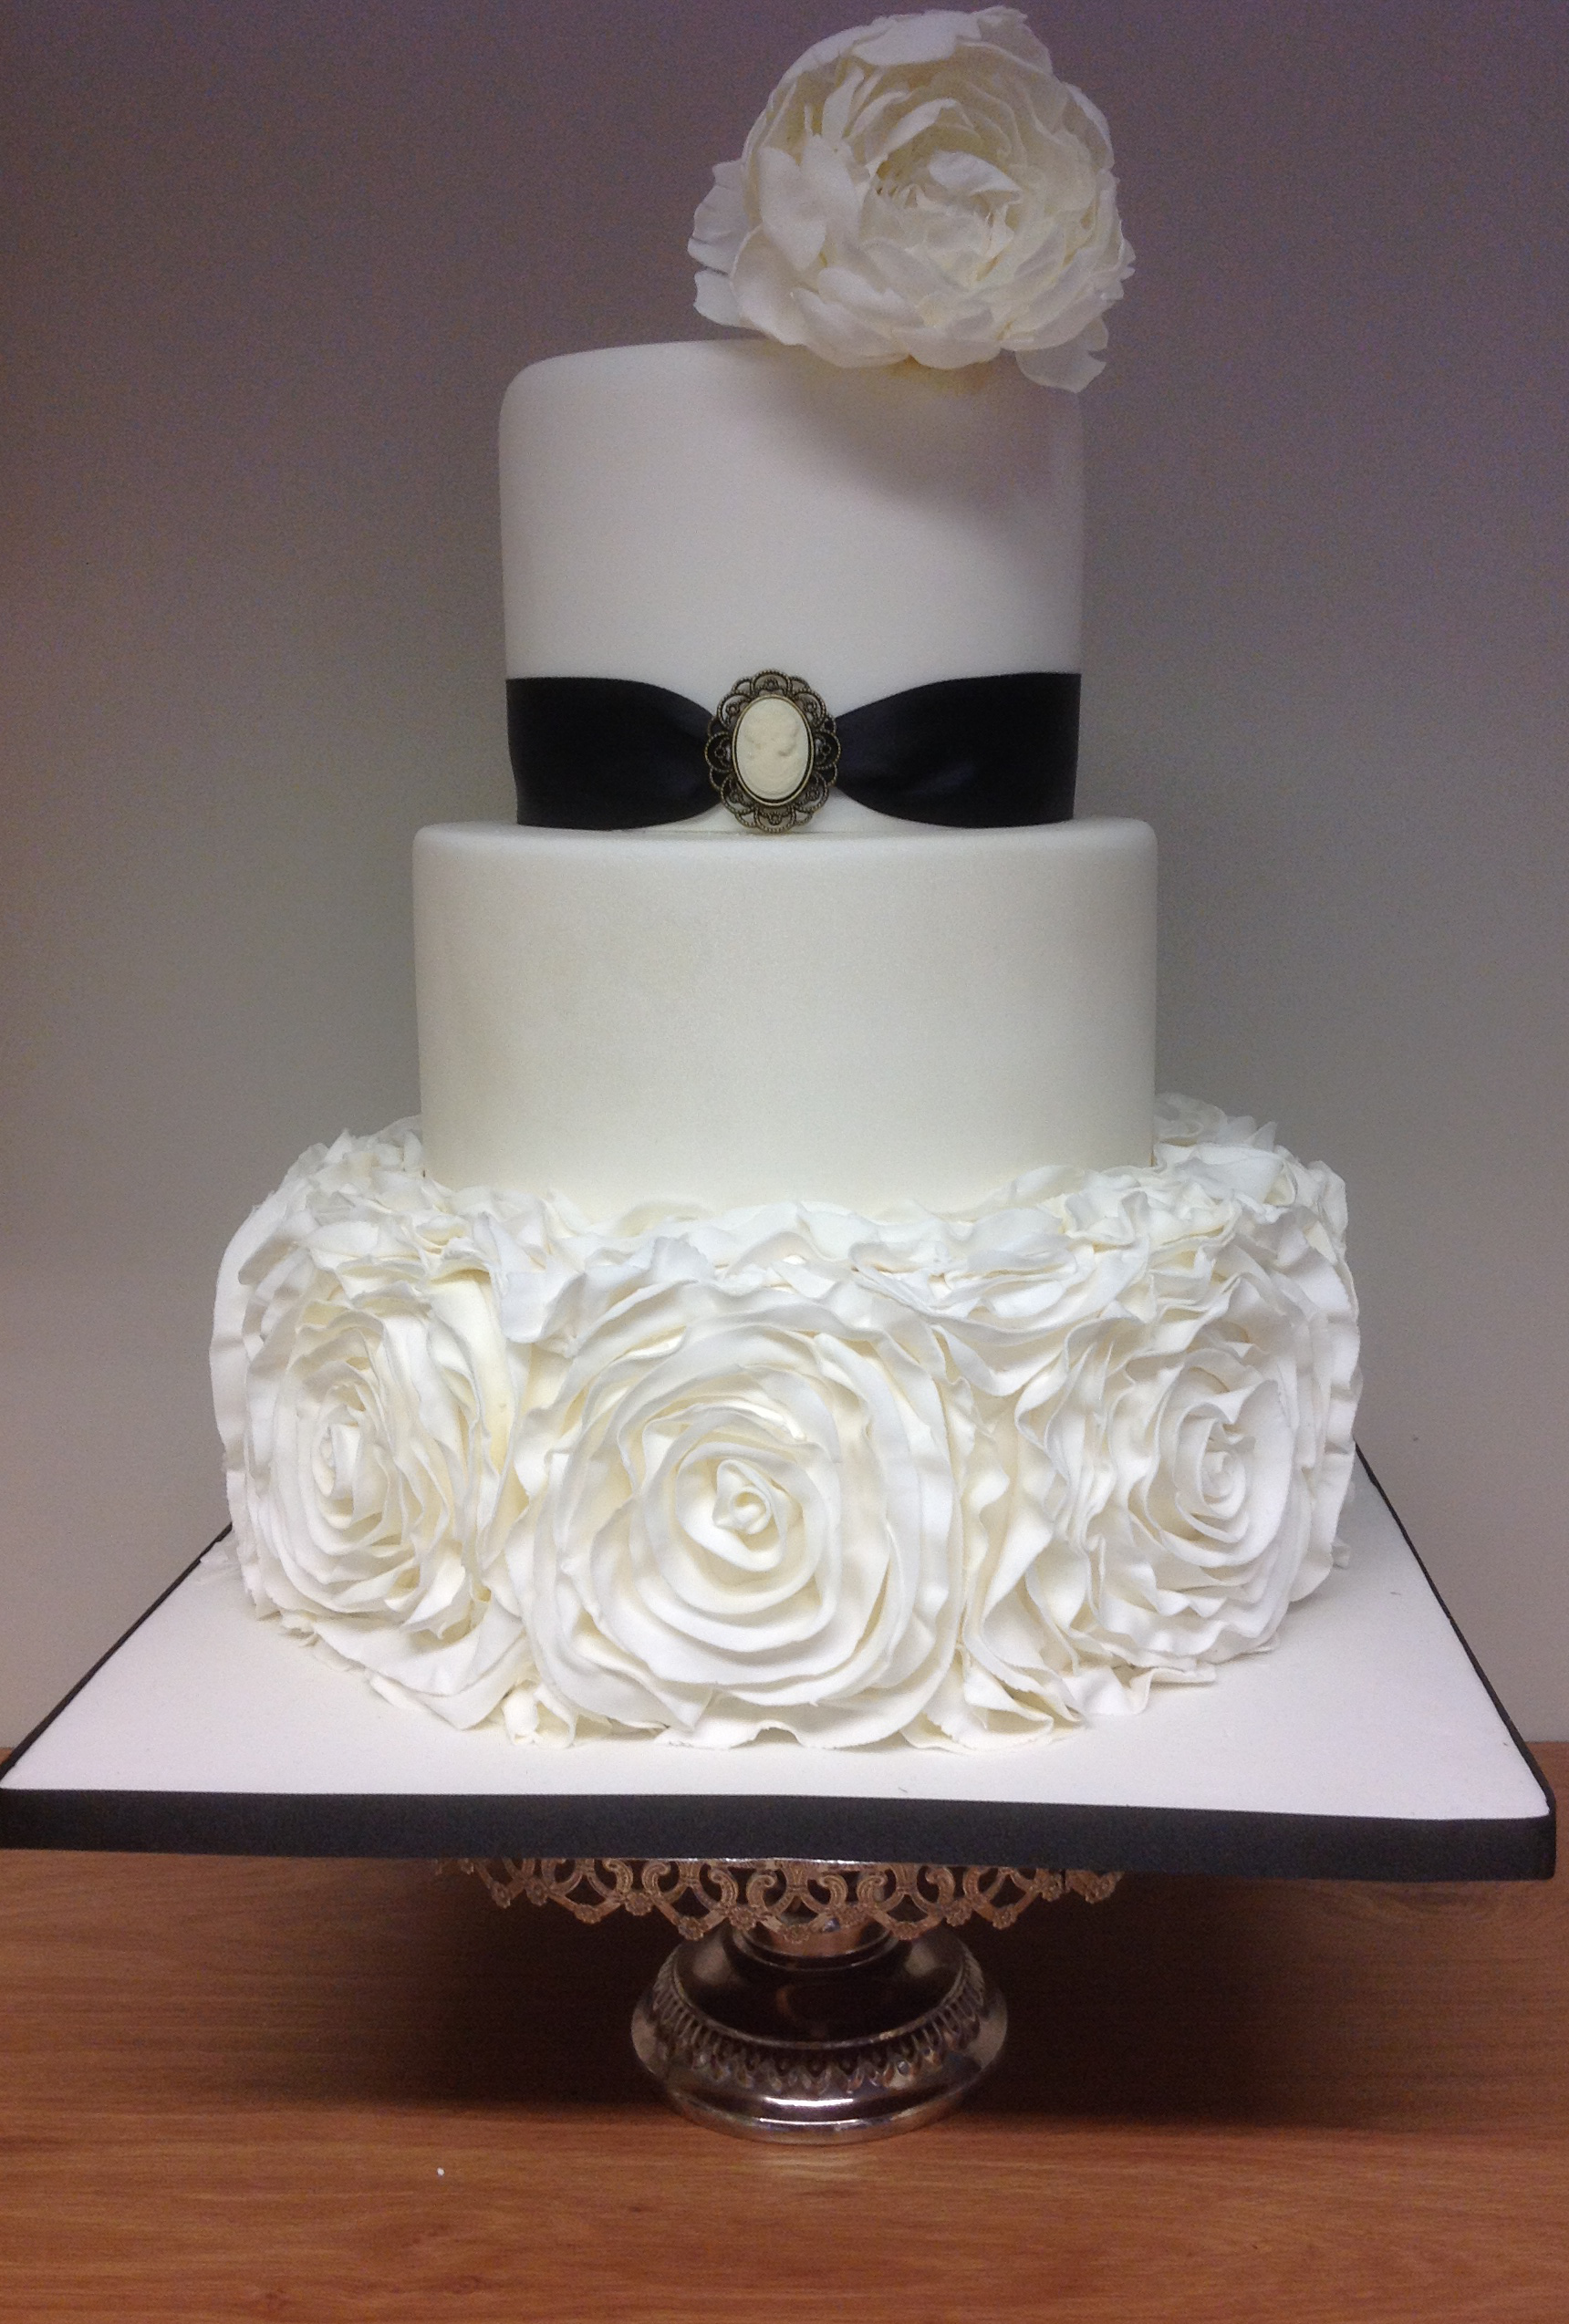 Wedding Cakes by Fiona Milnes, Lincoln, Lincolnshire